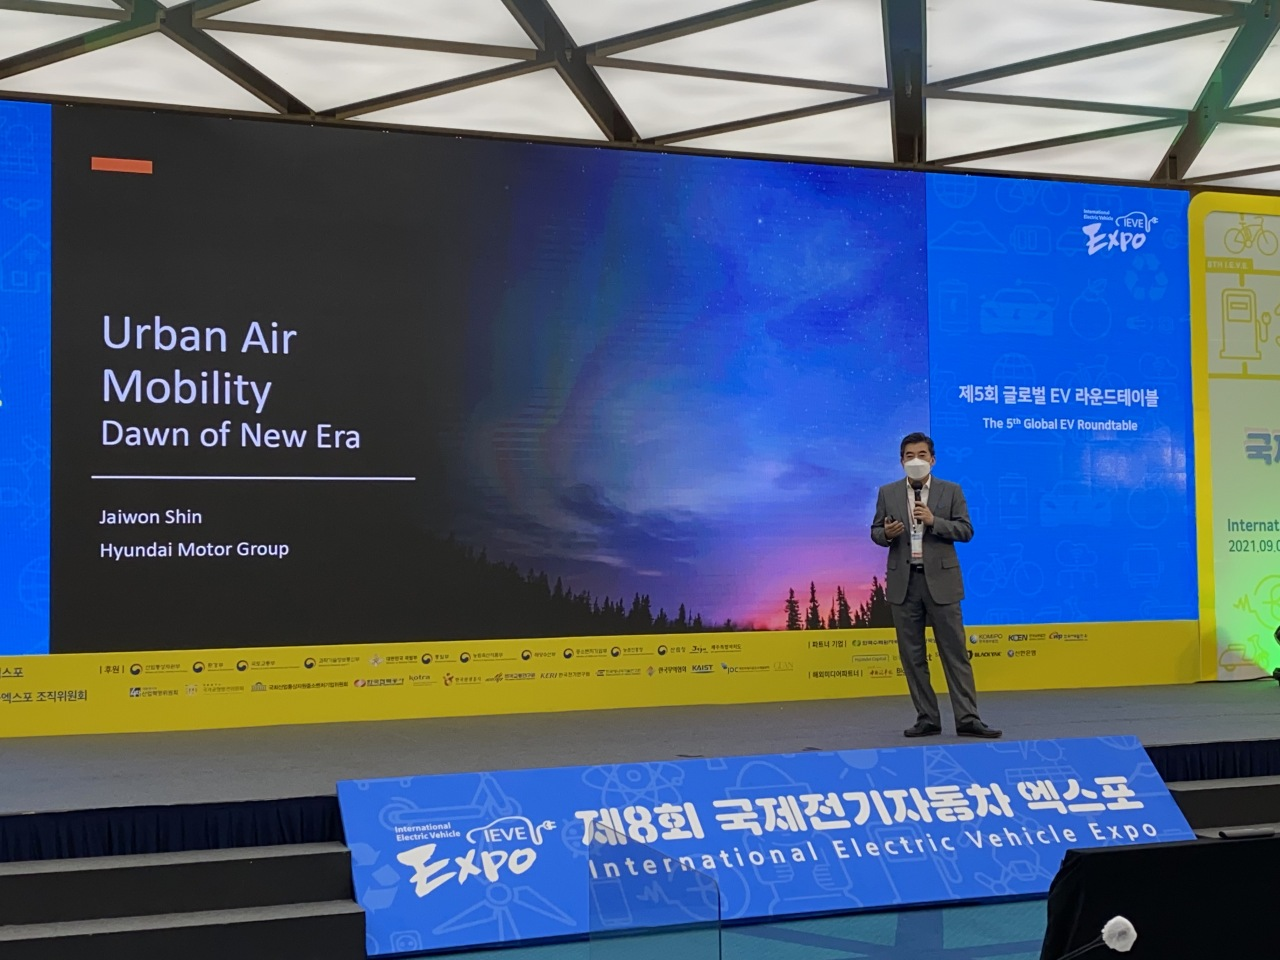 Shin Jai-won, chief of Hyundai Motor Group's Urban Air Mobility division, delivers his keynote presentation during the fifth Global EV Round Table held as part of this year's International Electric Vehicle Expo in Jeju Island on Wednesday. (Jo He-rim/The Korea Herald)